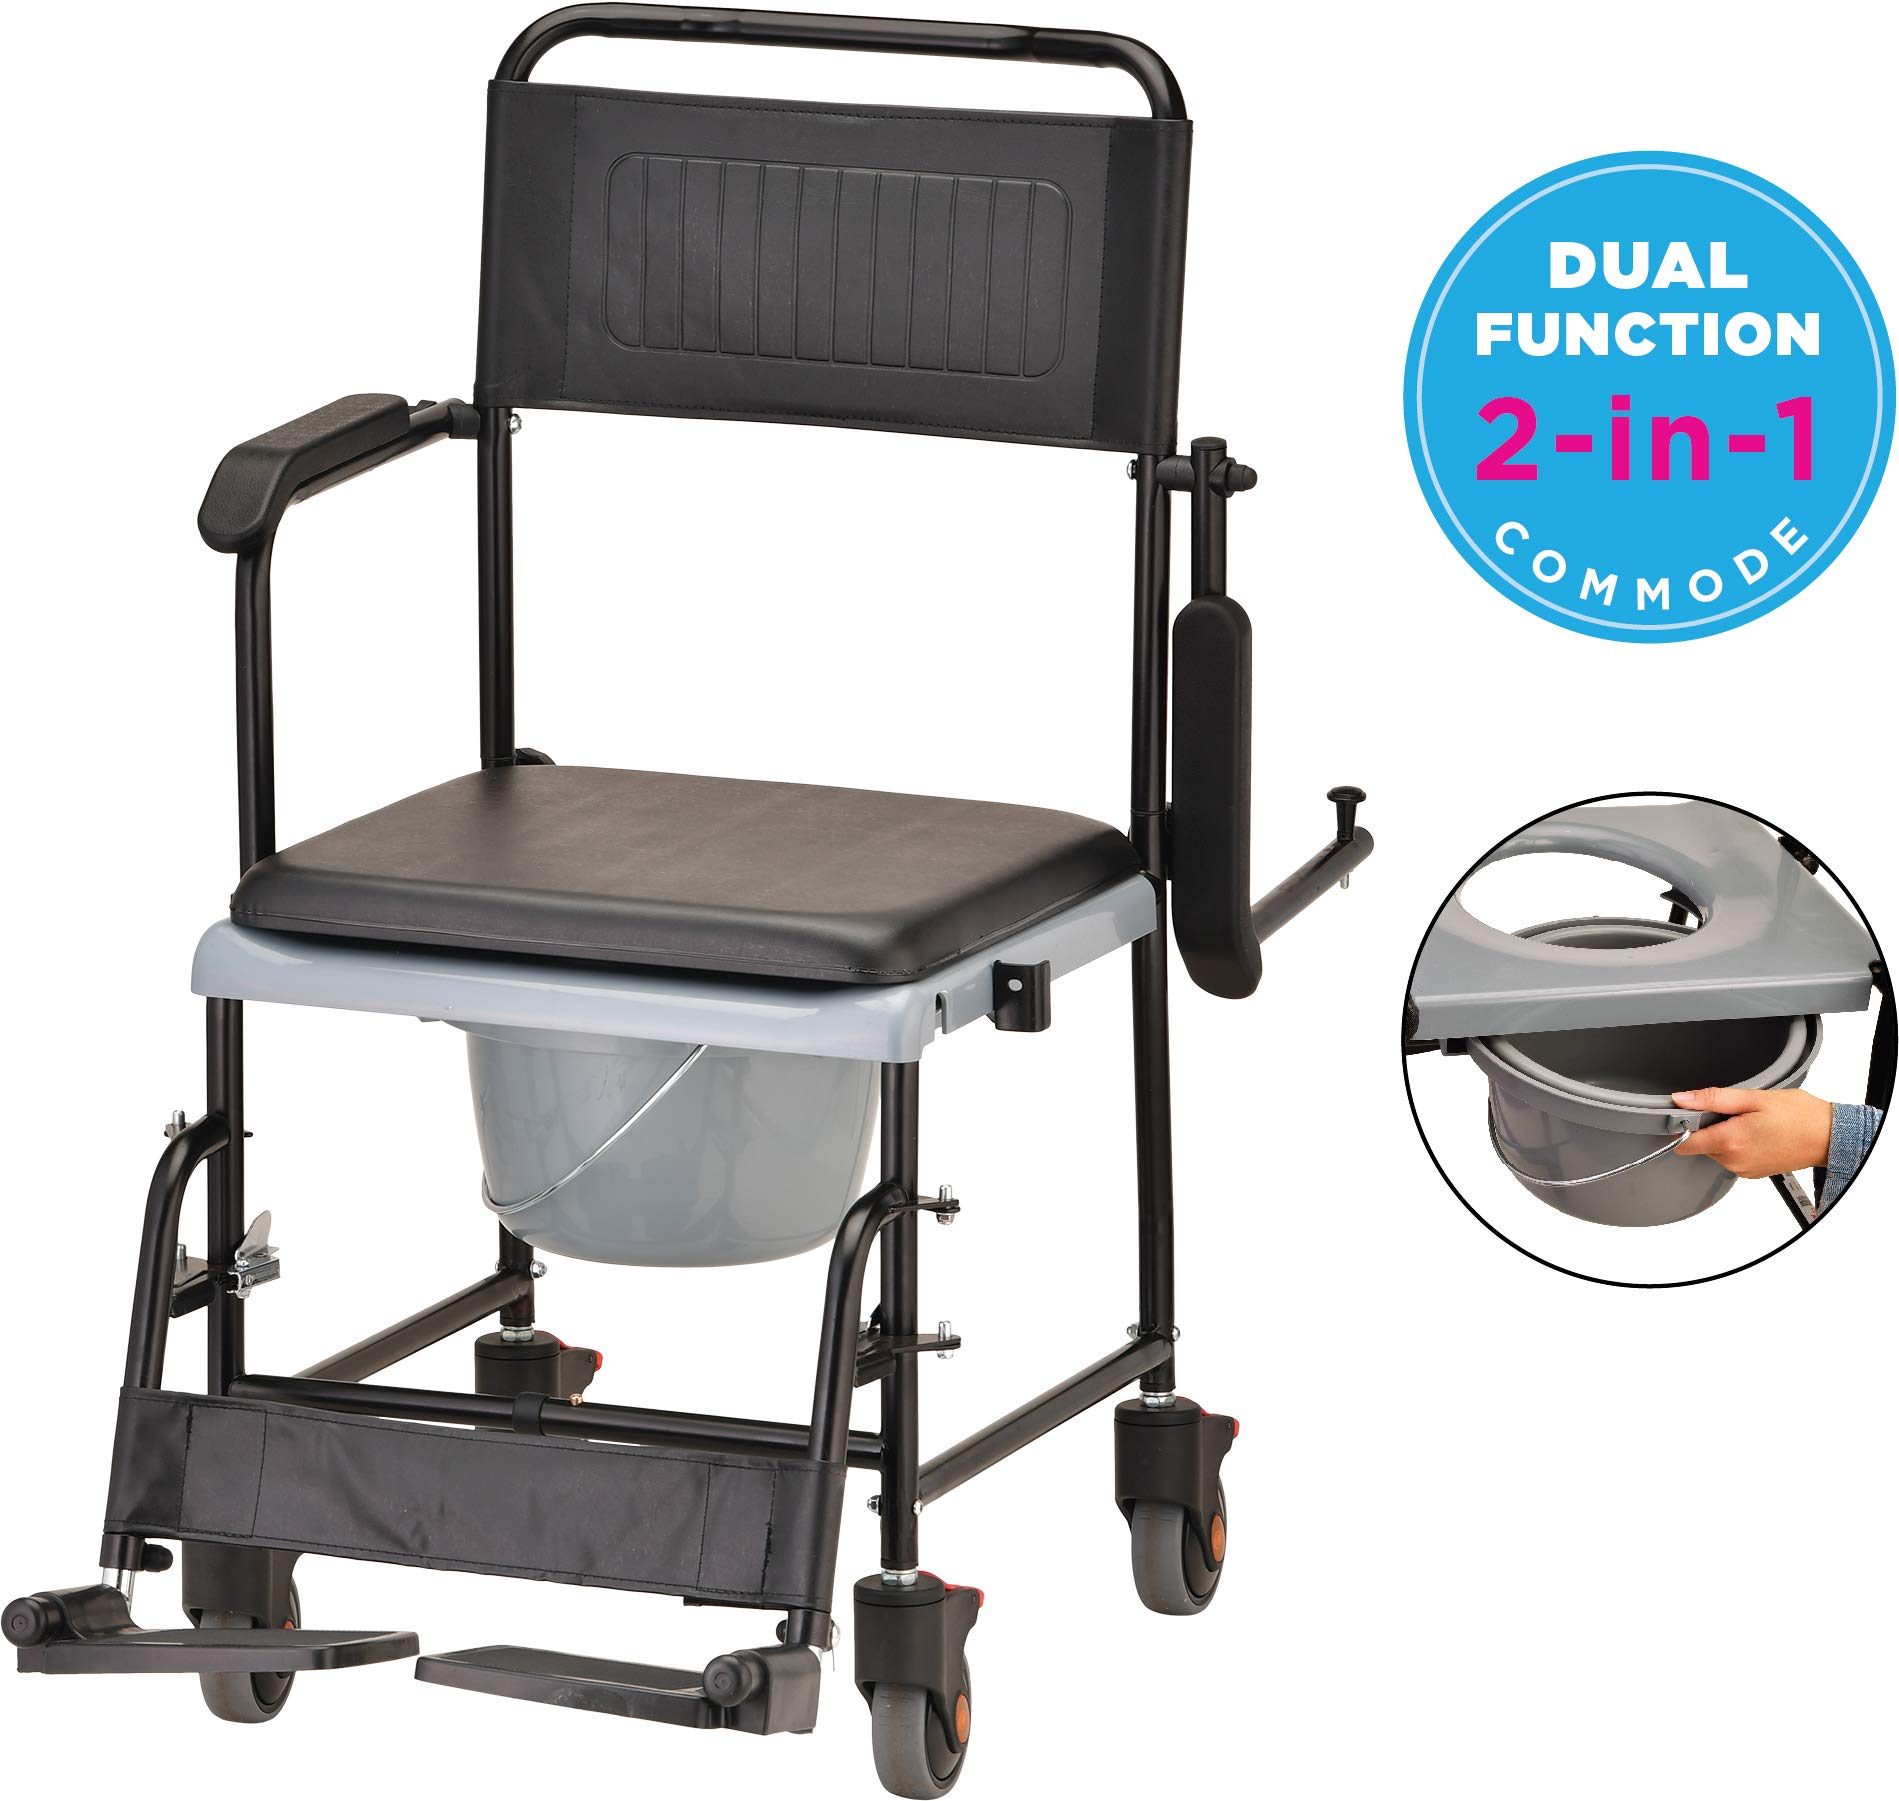 NOVA Drop Arm (for Easy User Transfer) Transport Chair Commode, Rolling with Locking Wheels & Removable Padded Seat by NOVA Medical Products